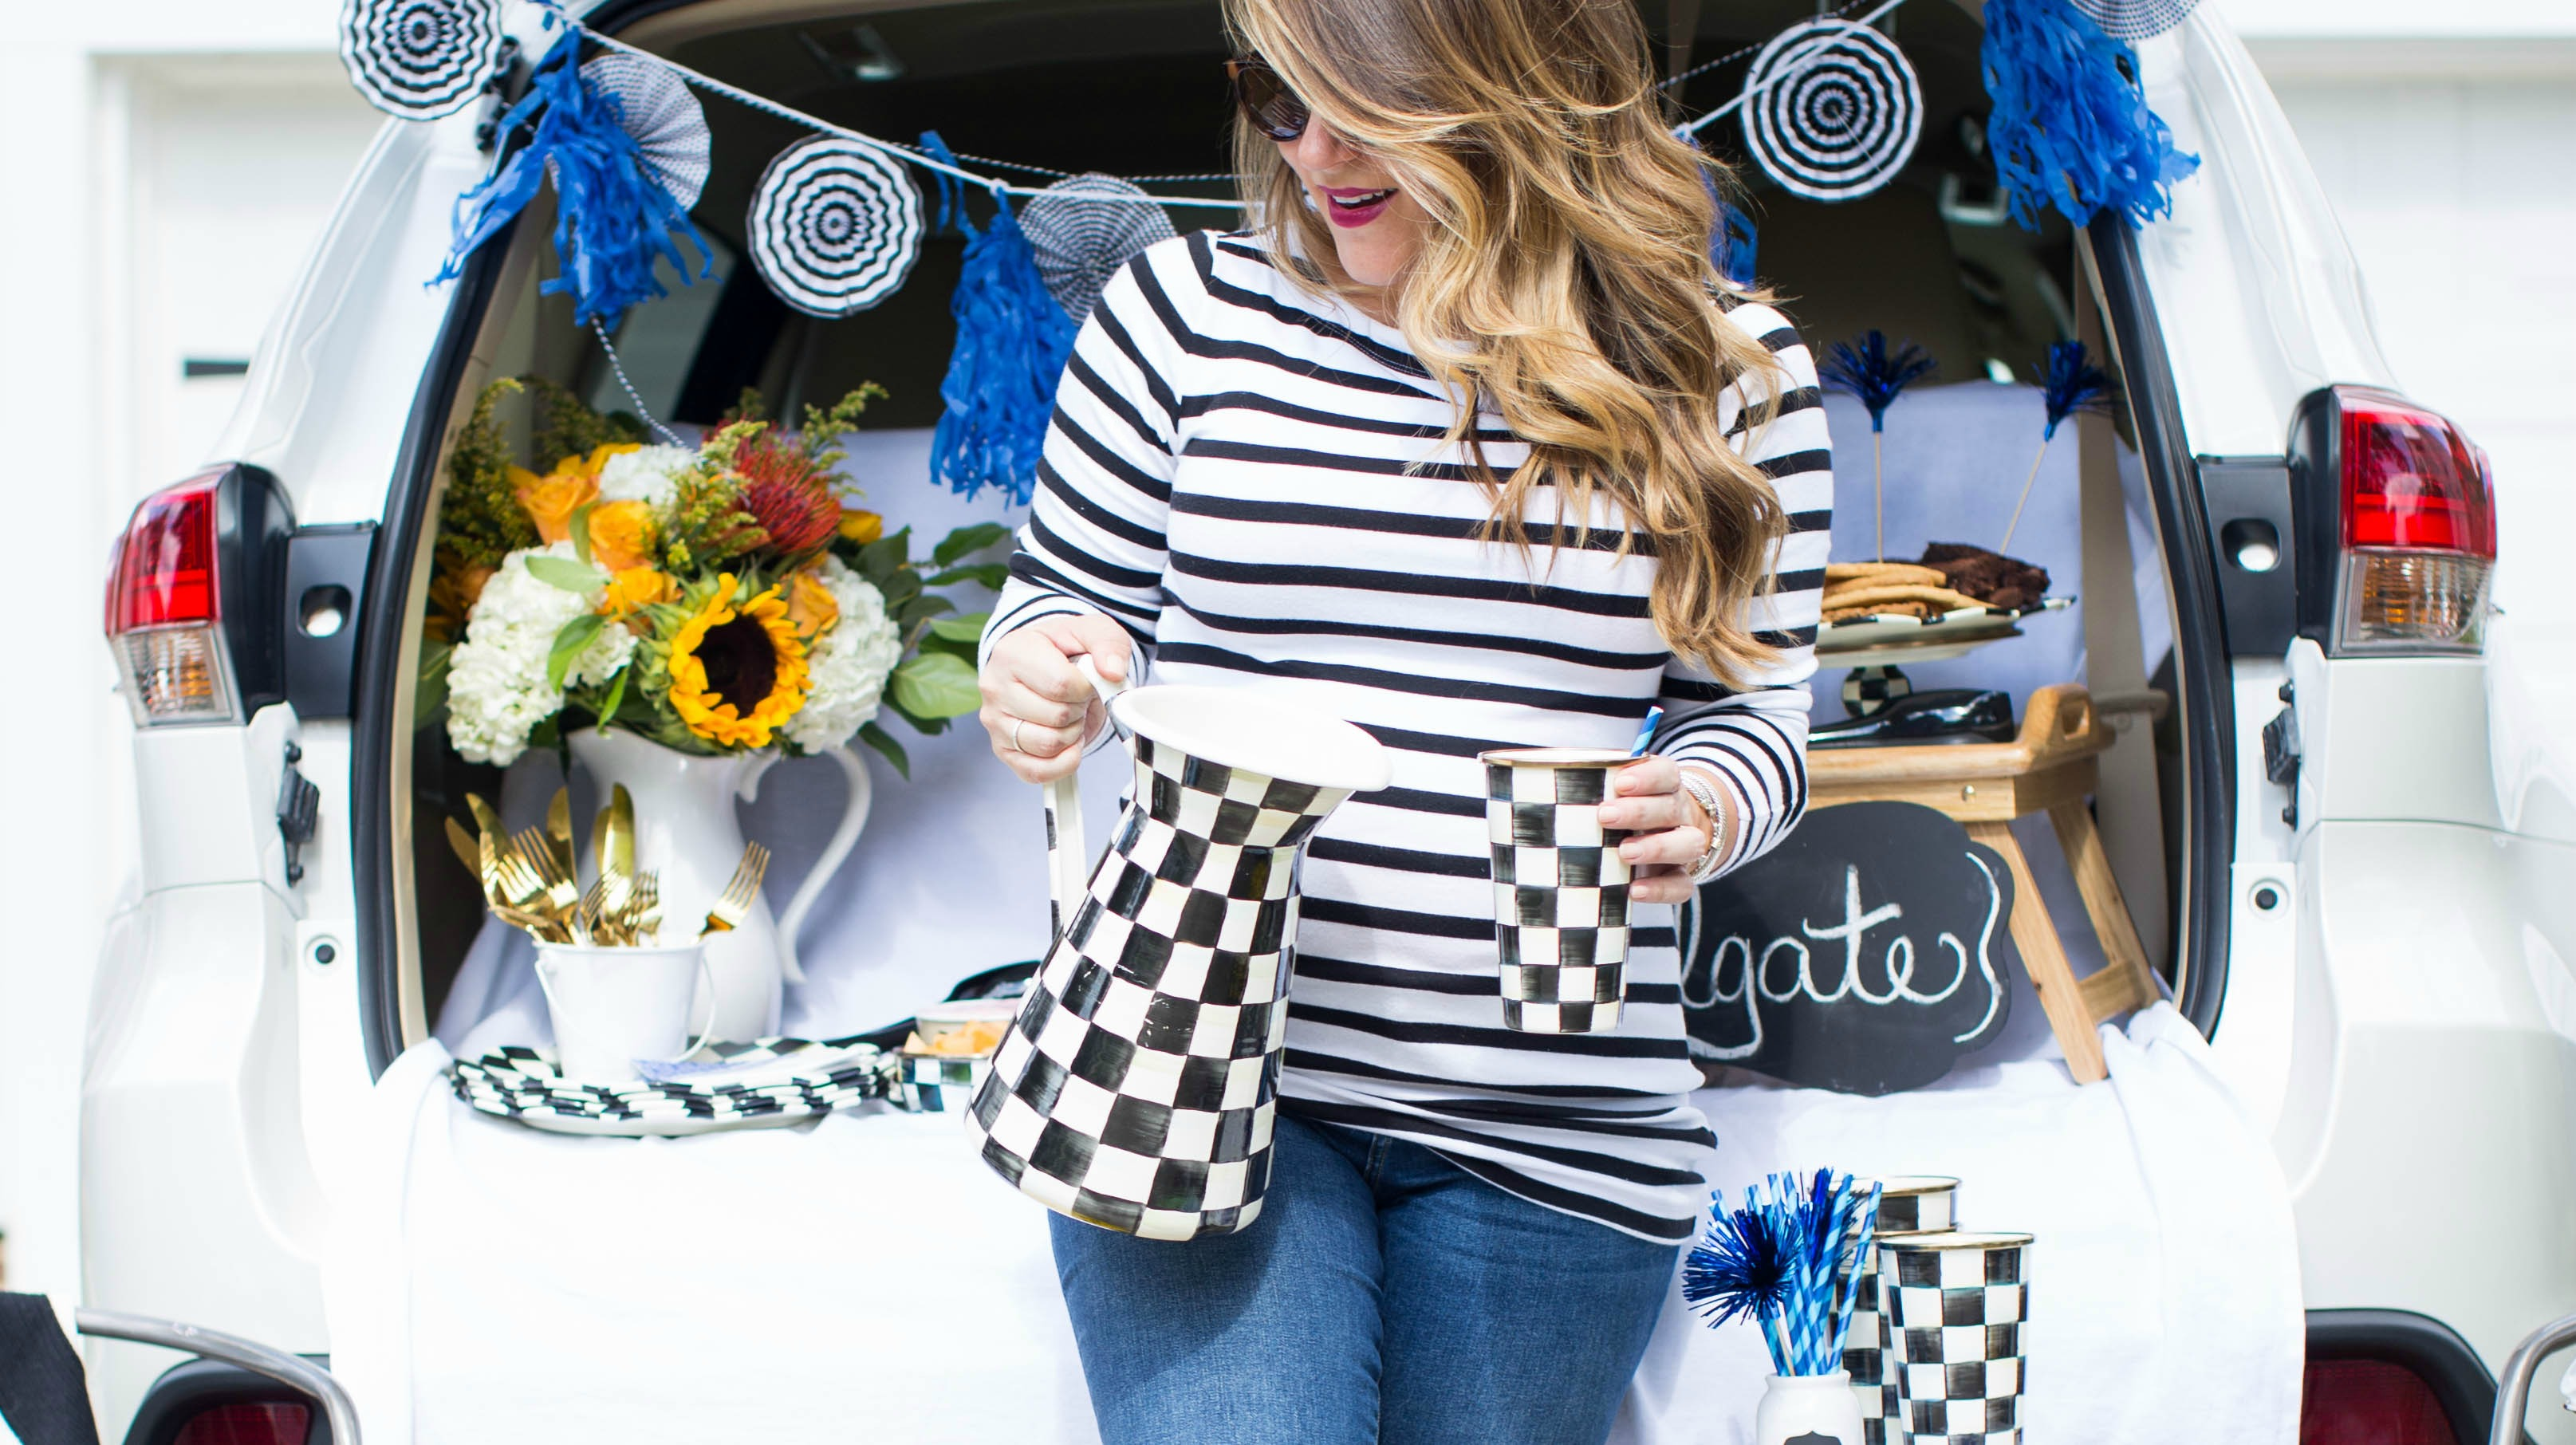 How to: Host a Great Tailgate Party by North Carolina lifestyle blogger Coffee Beans and Bobby Pins